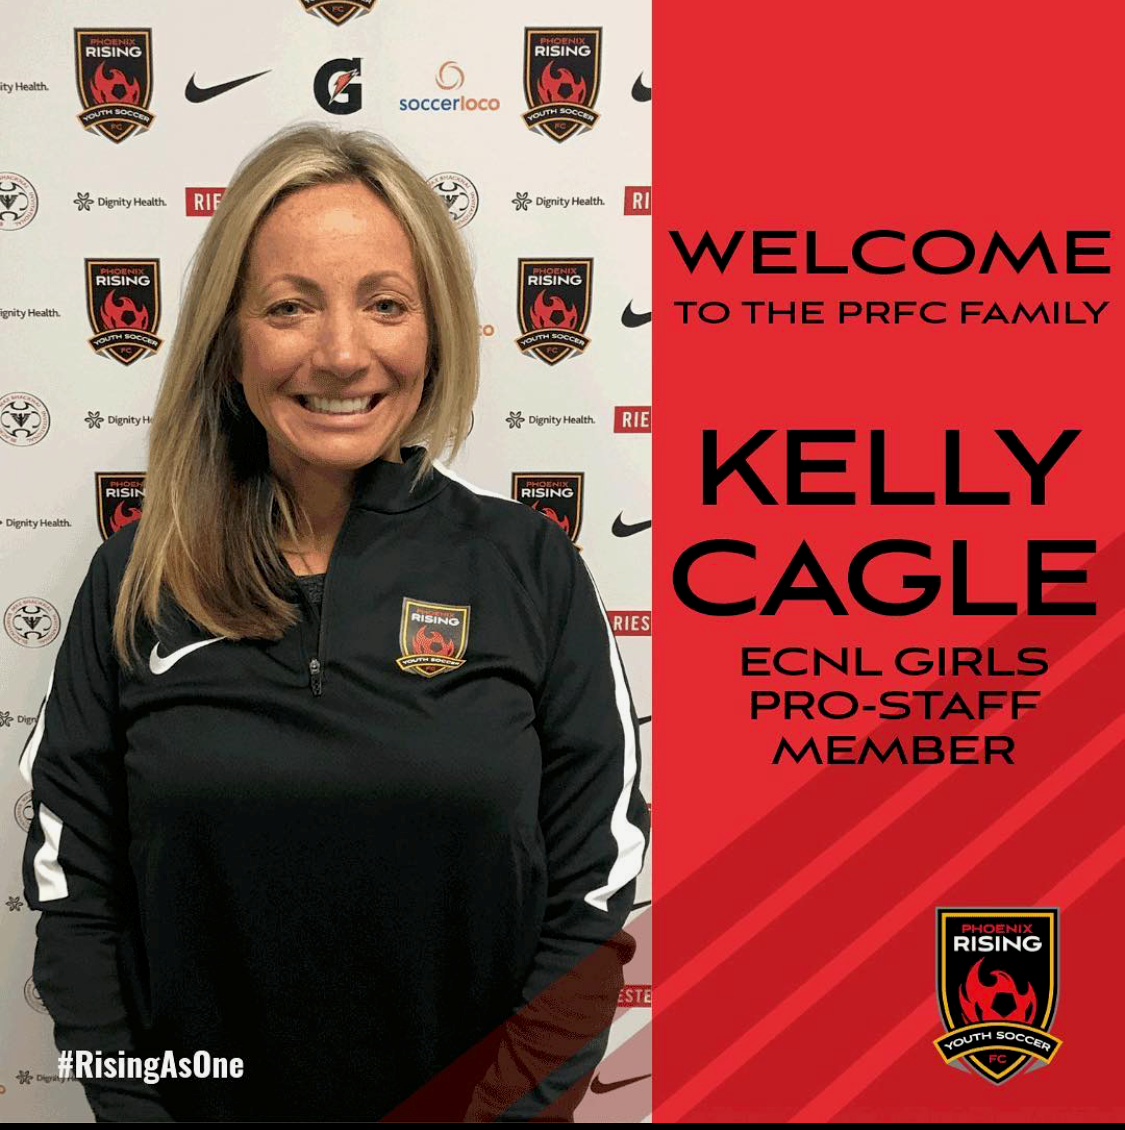 PRFCYS Welcomes Kelly Cagle